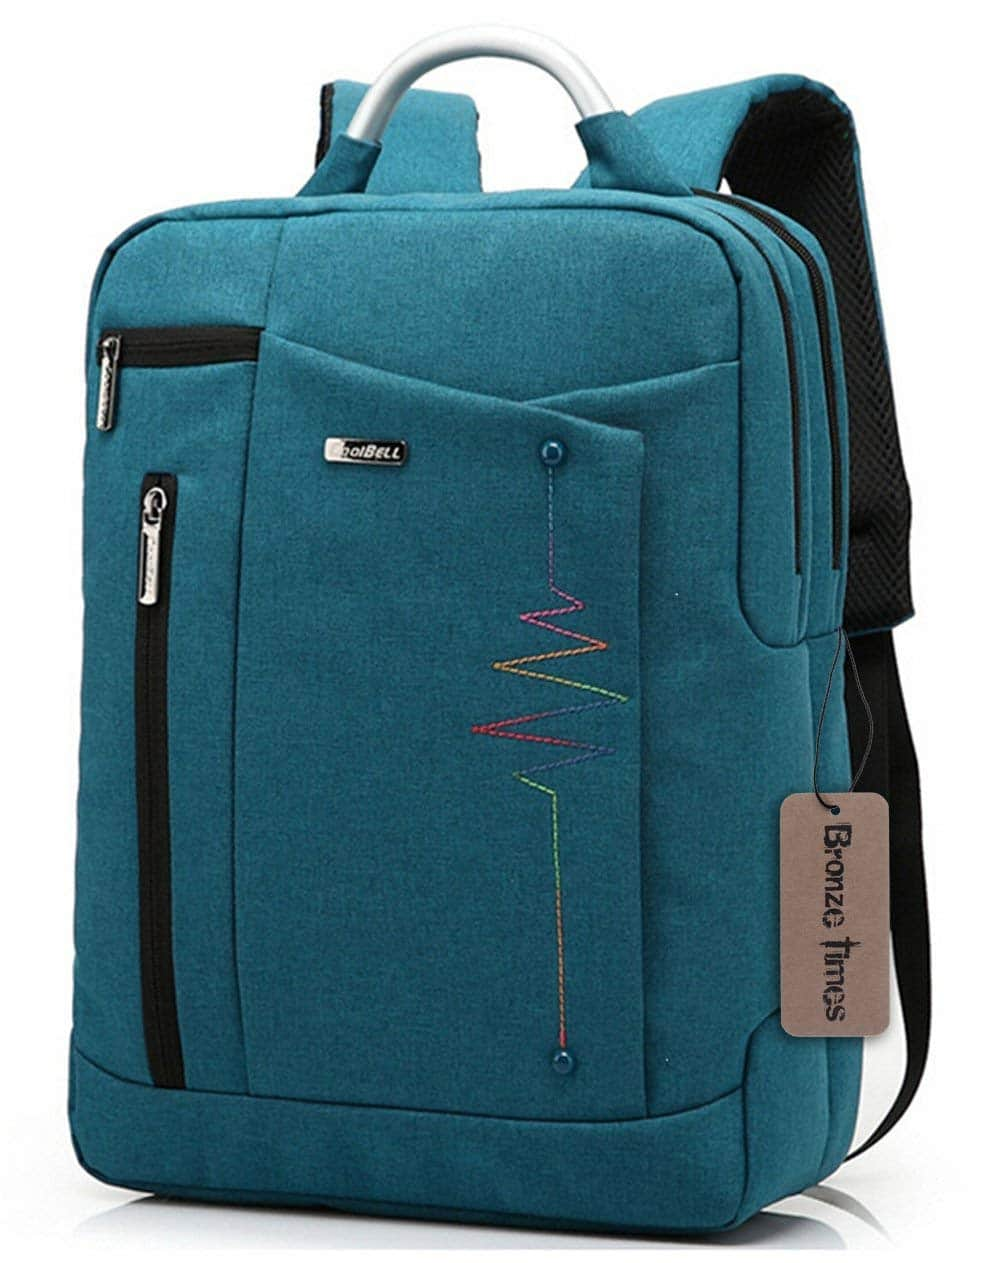 Bronze Times (TM) Premium Shockproof Canvas Laptop Backpack Travel Bag (Blue) $19.35